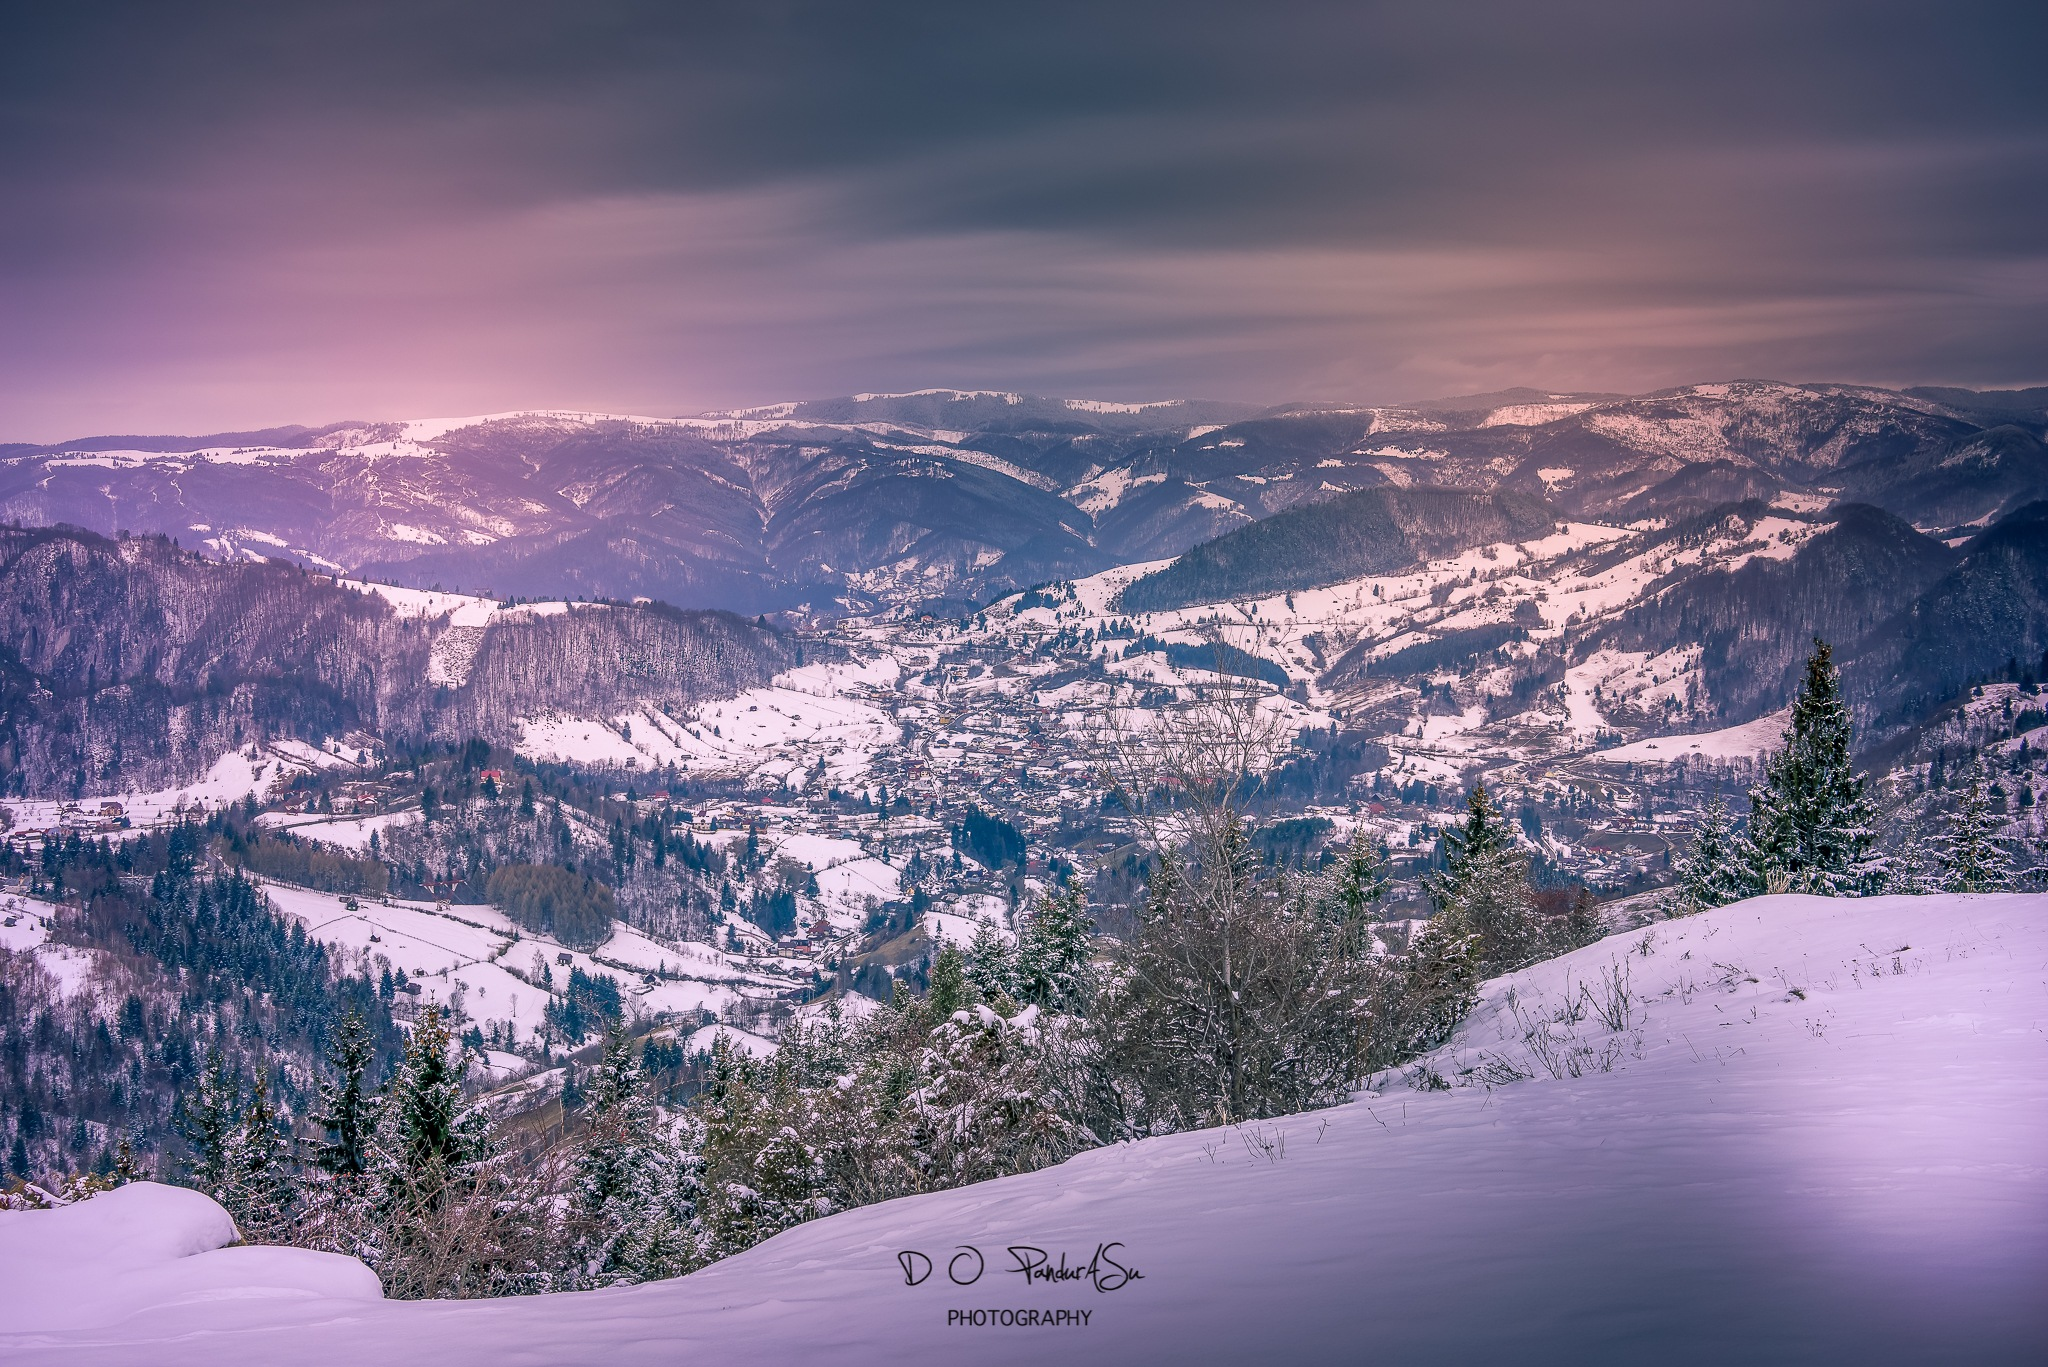 winter in Rucar - Bran by do pandurasu photography